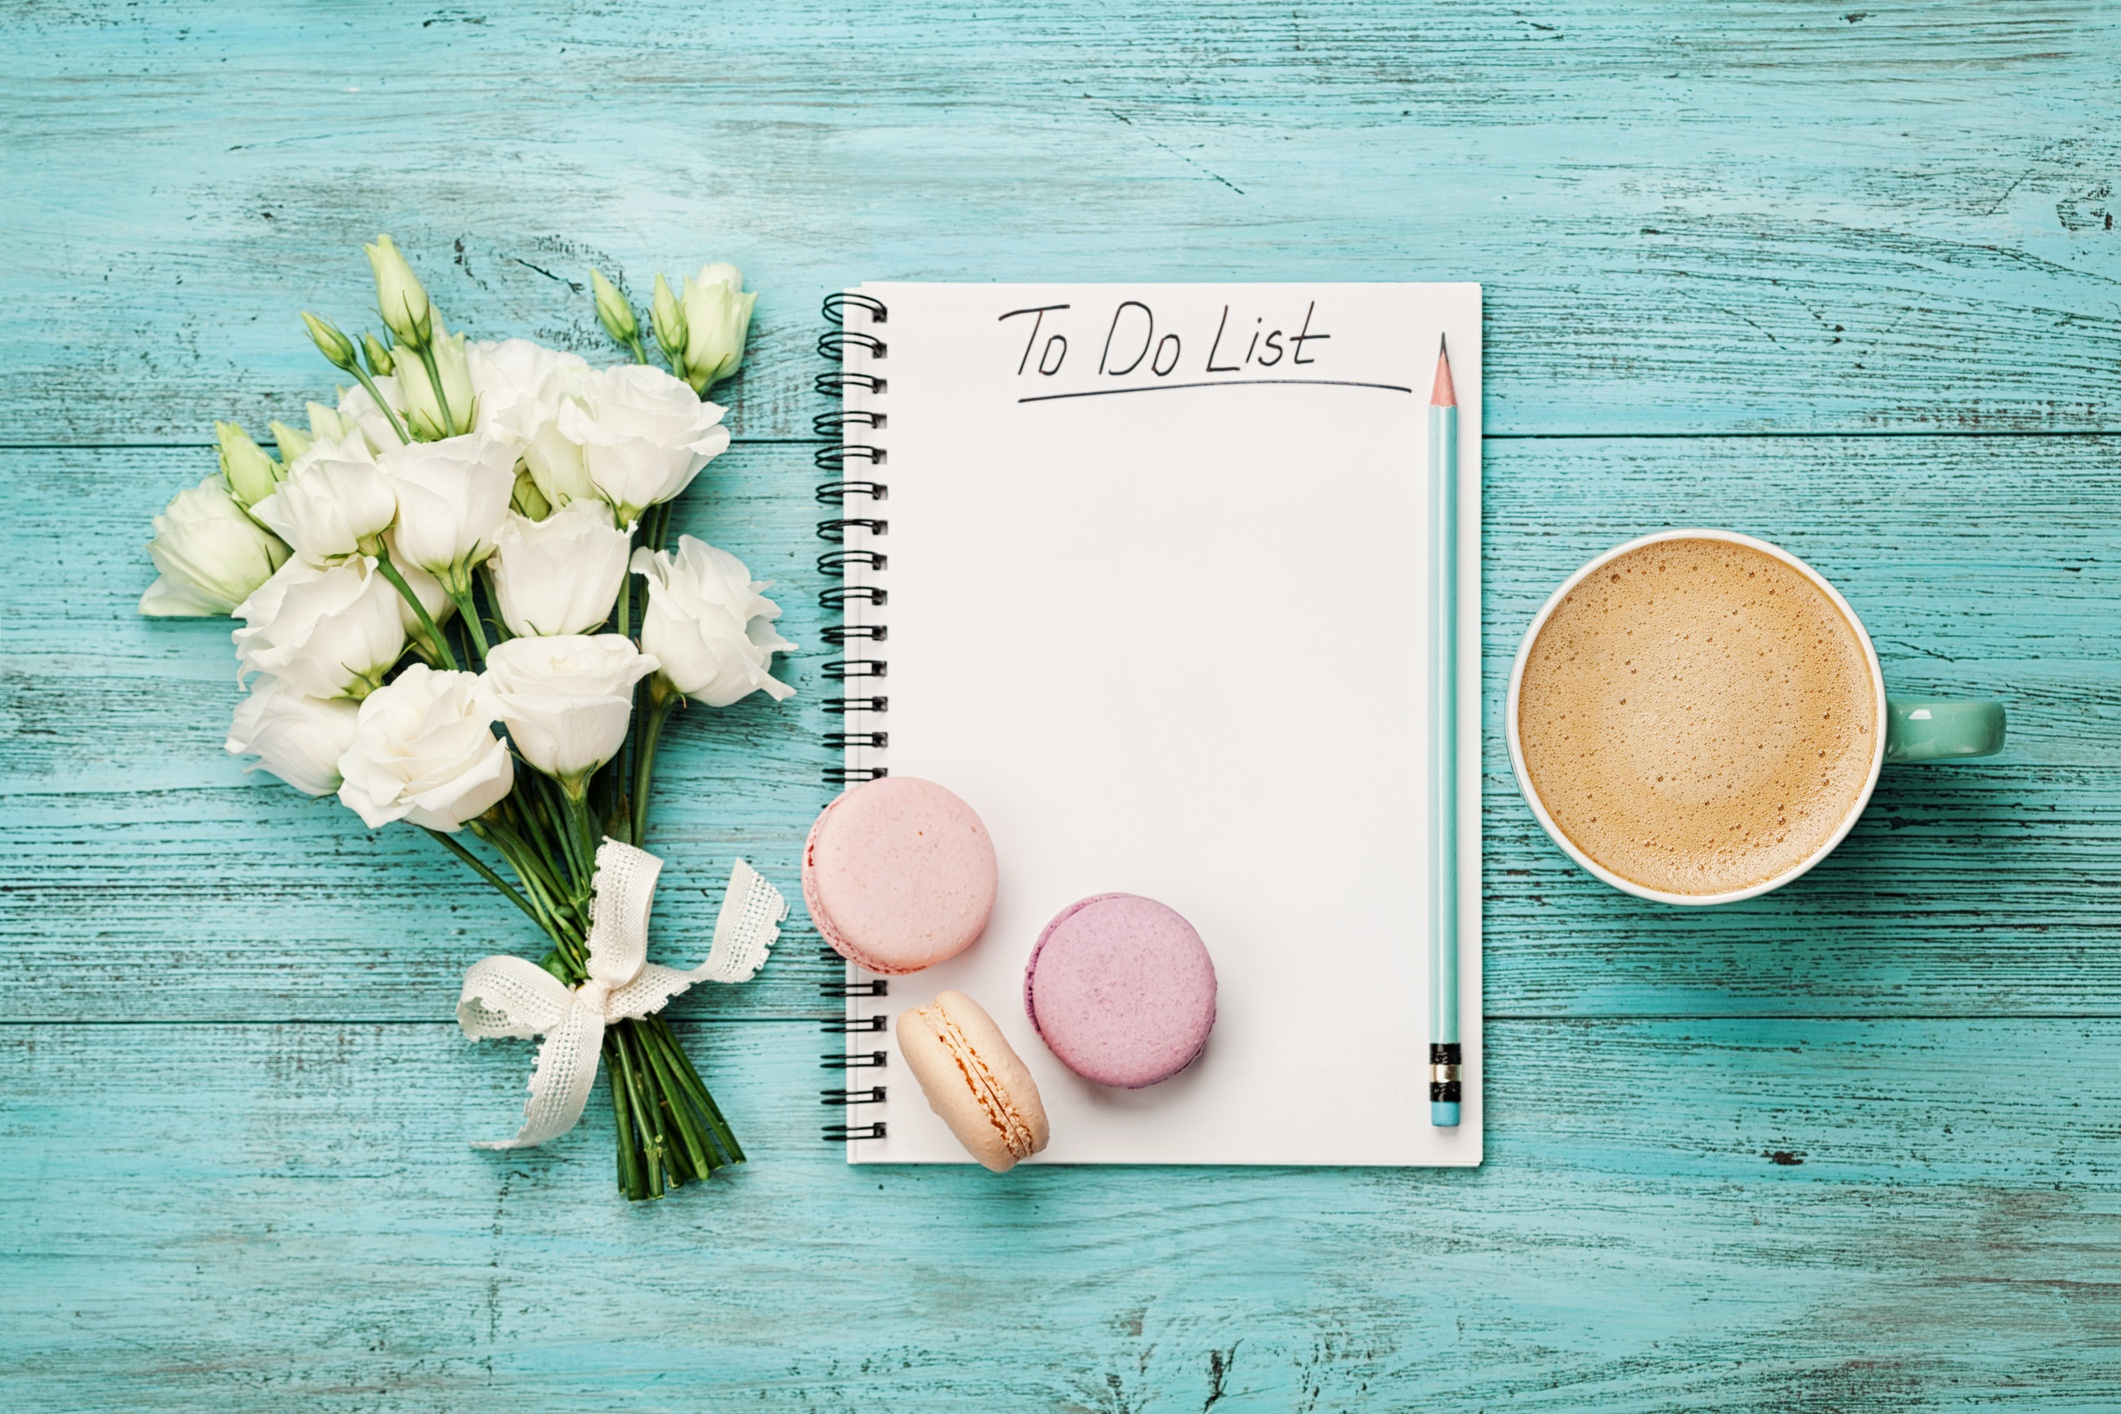 Party Mistake: Focusing Too Much on To-Do Lists